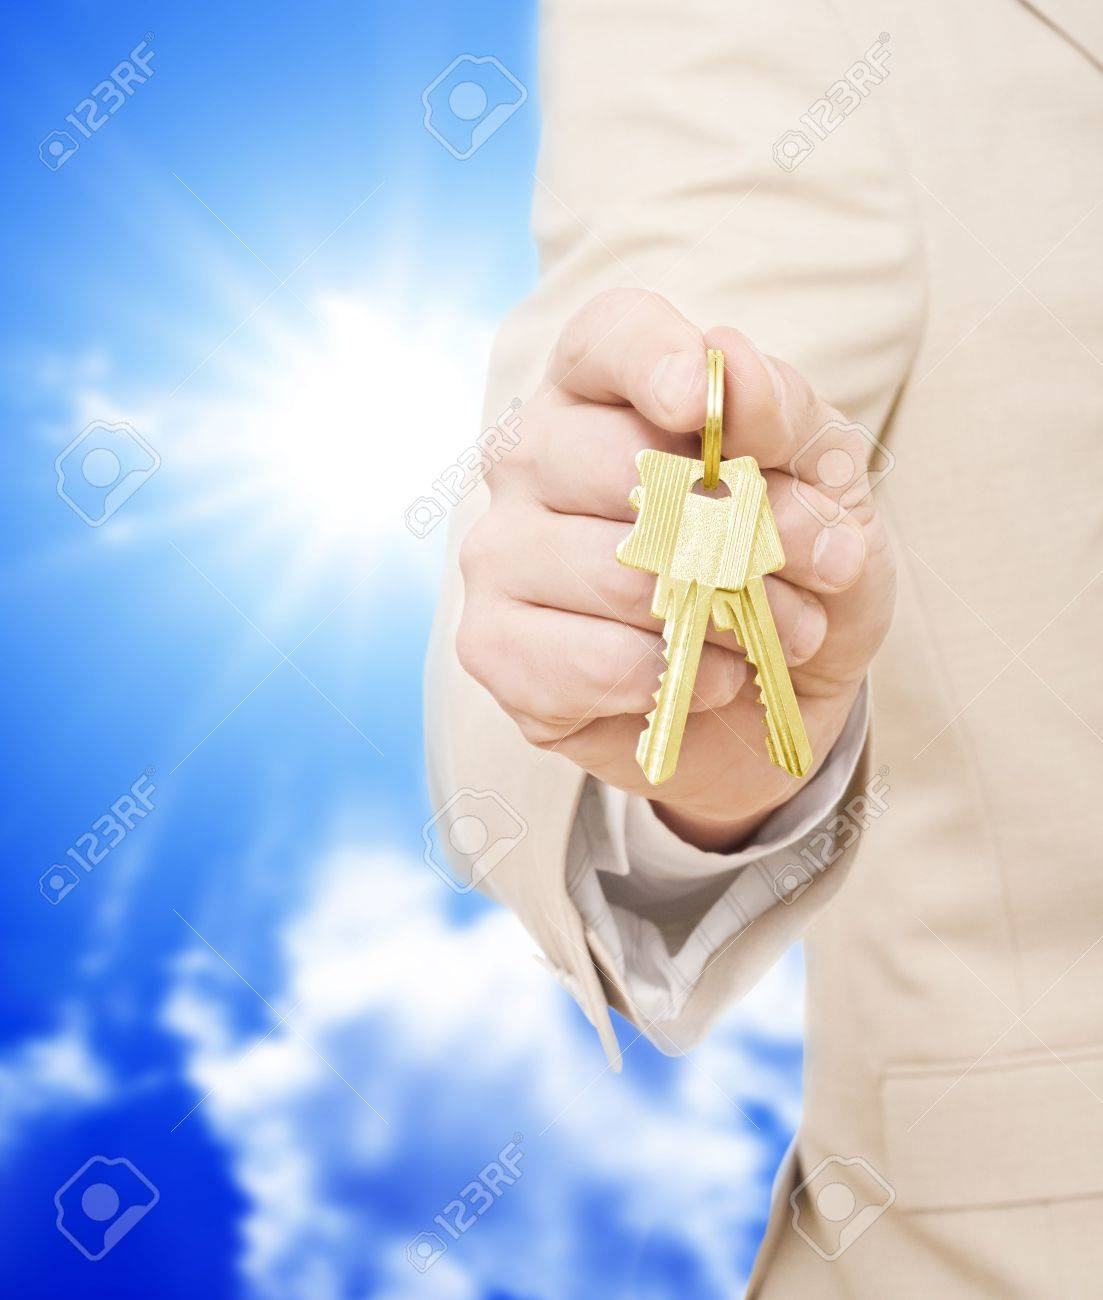 Handing over the keys.Blue skies in the background Stock Photo - 6519128